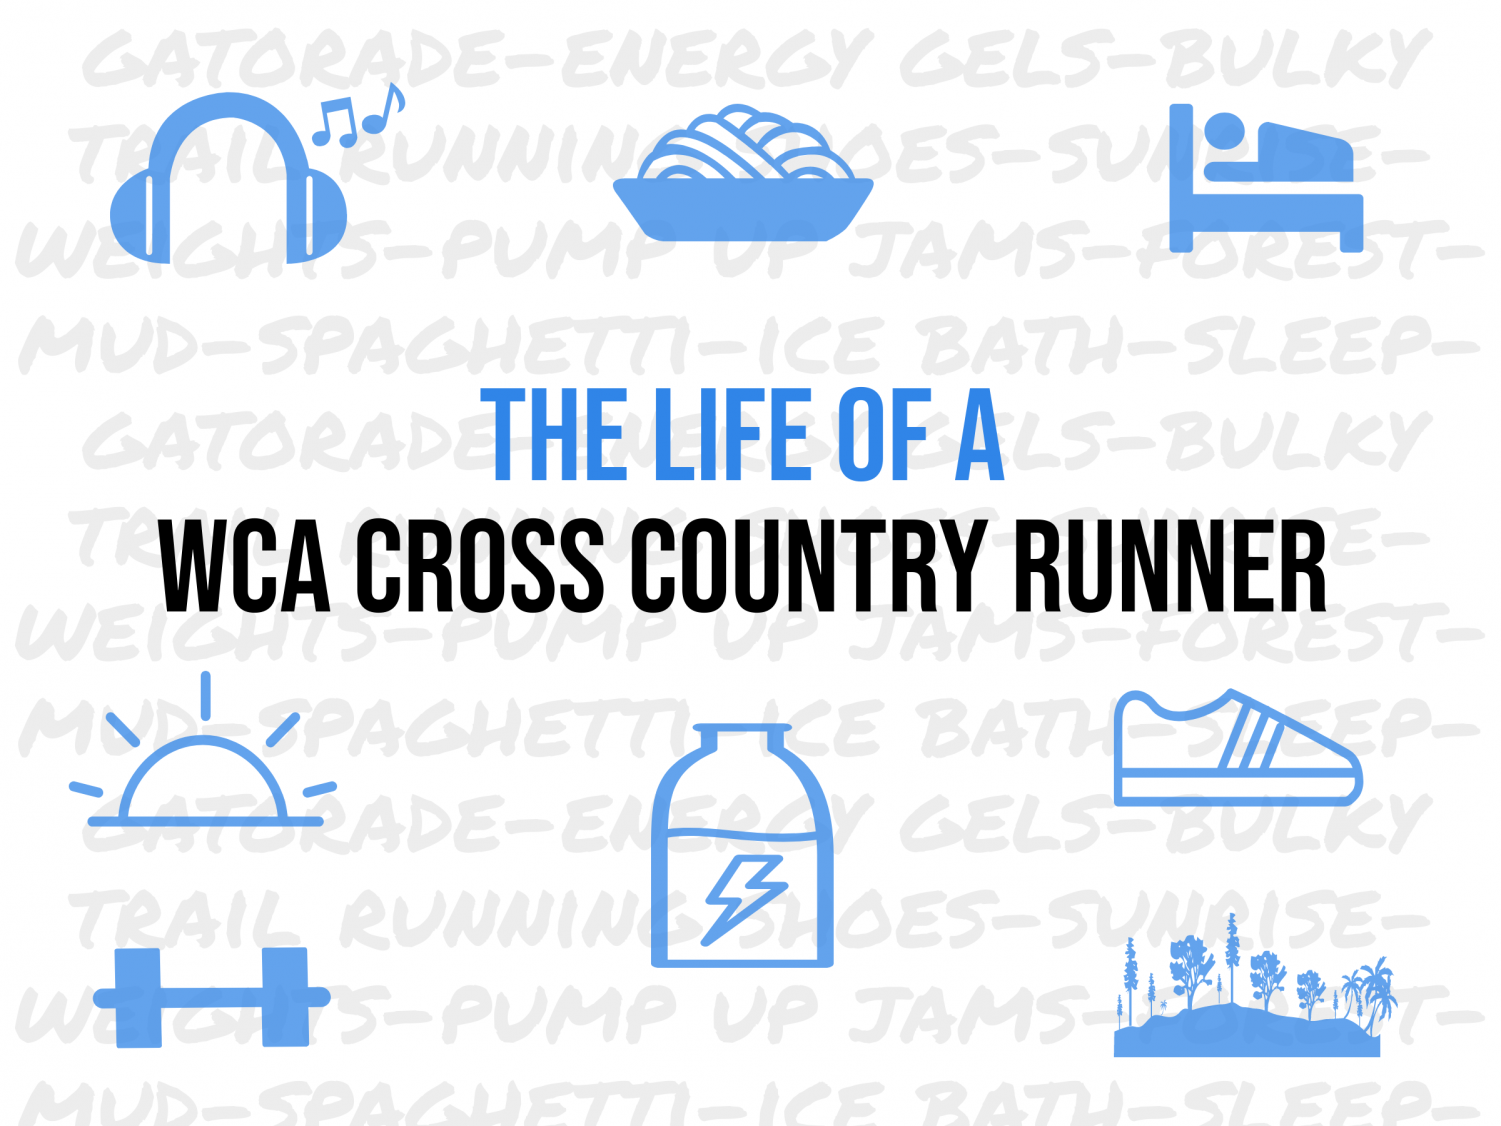 The symbols associated with a cliche WCA cross country runner.